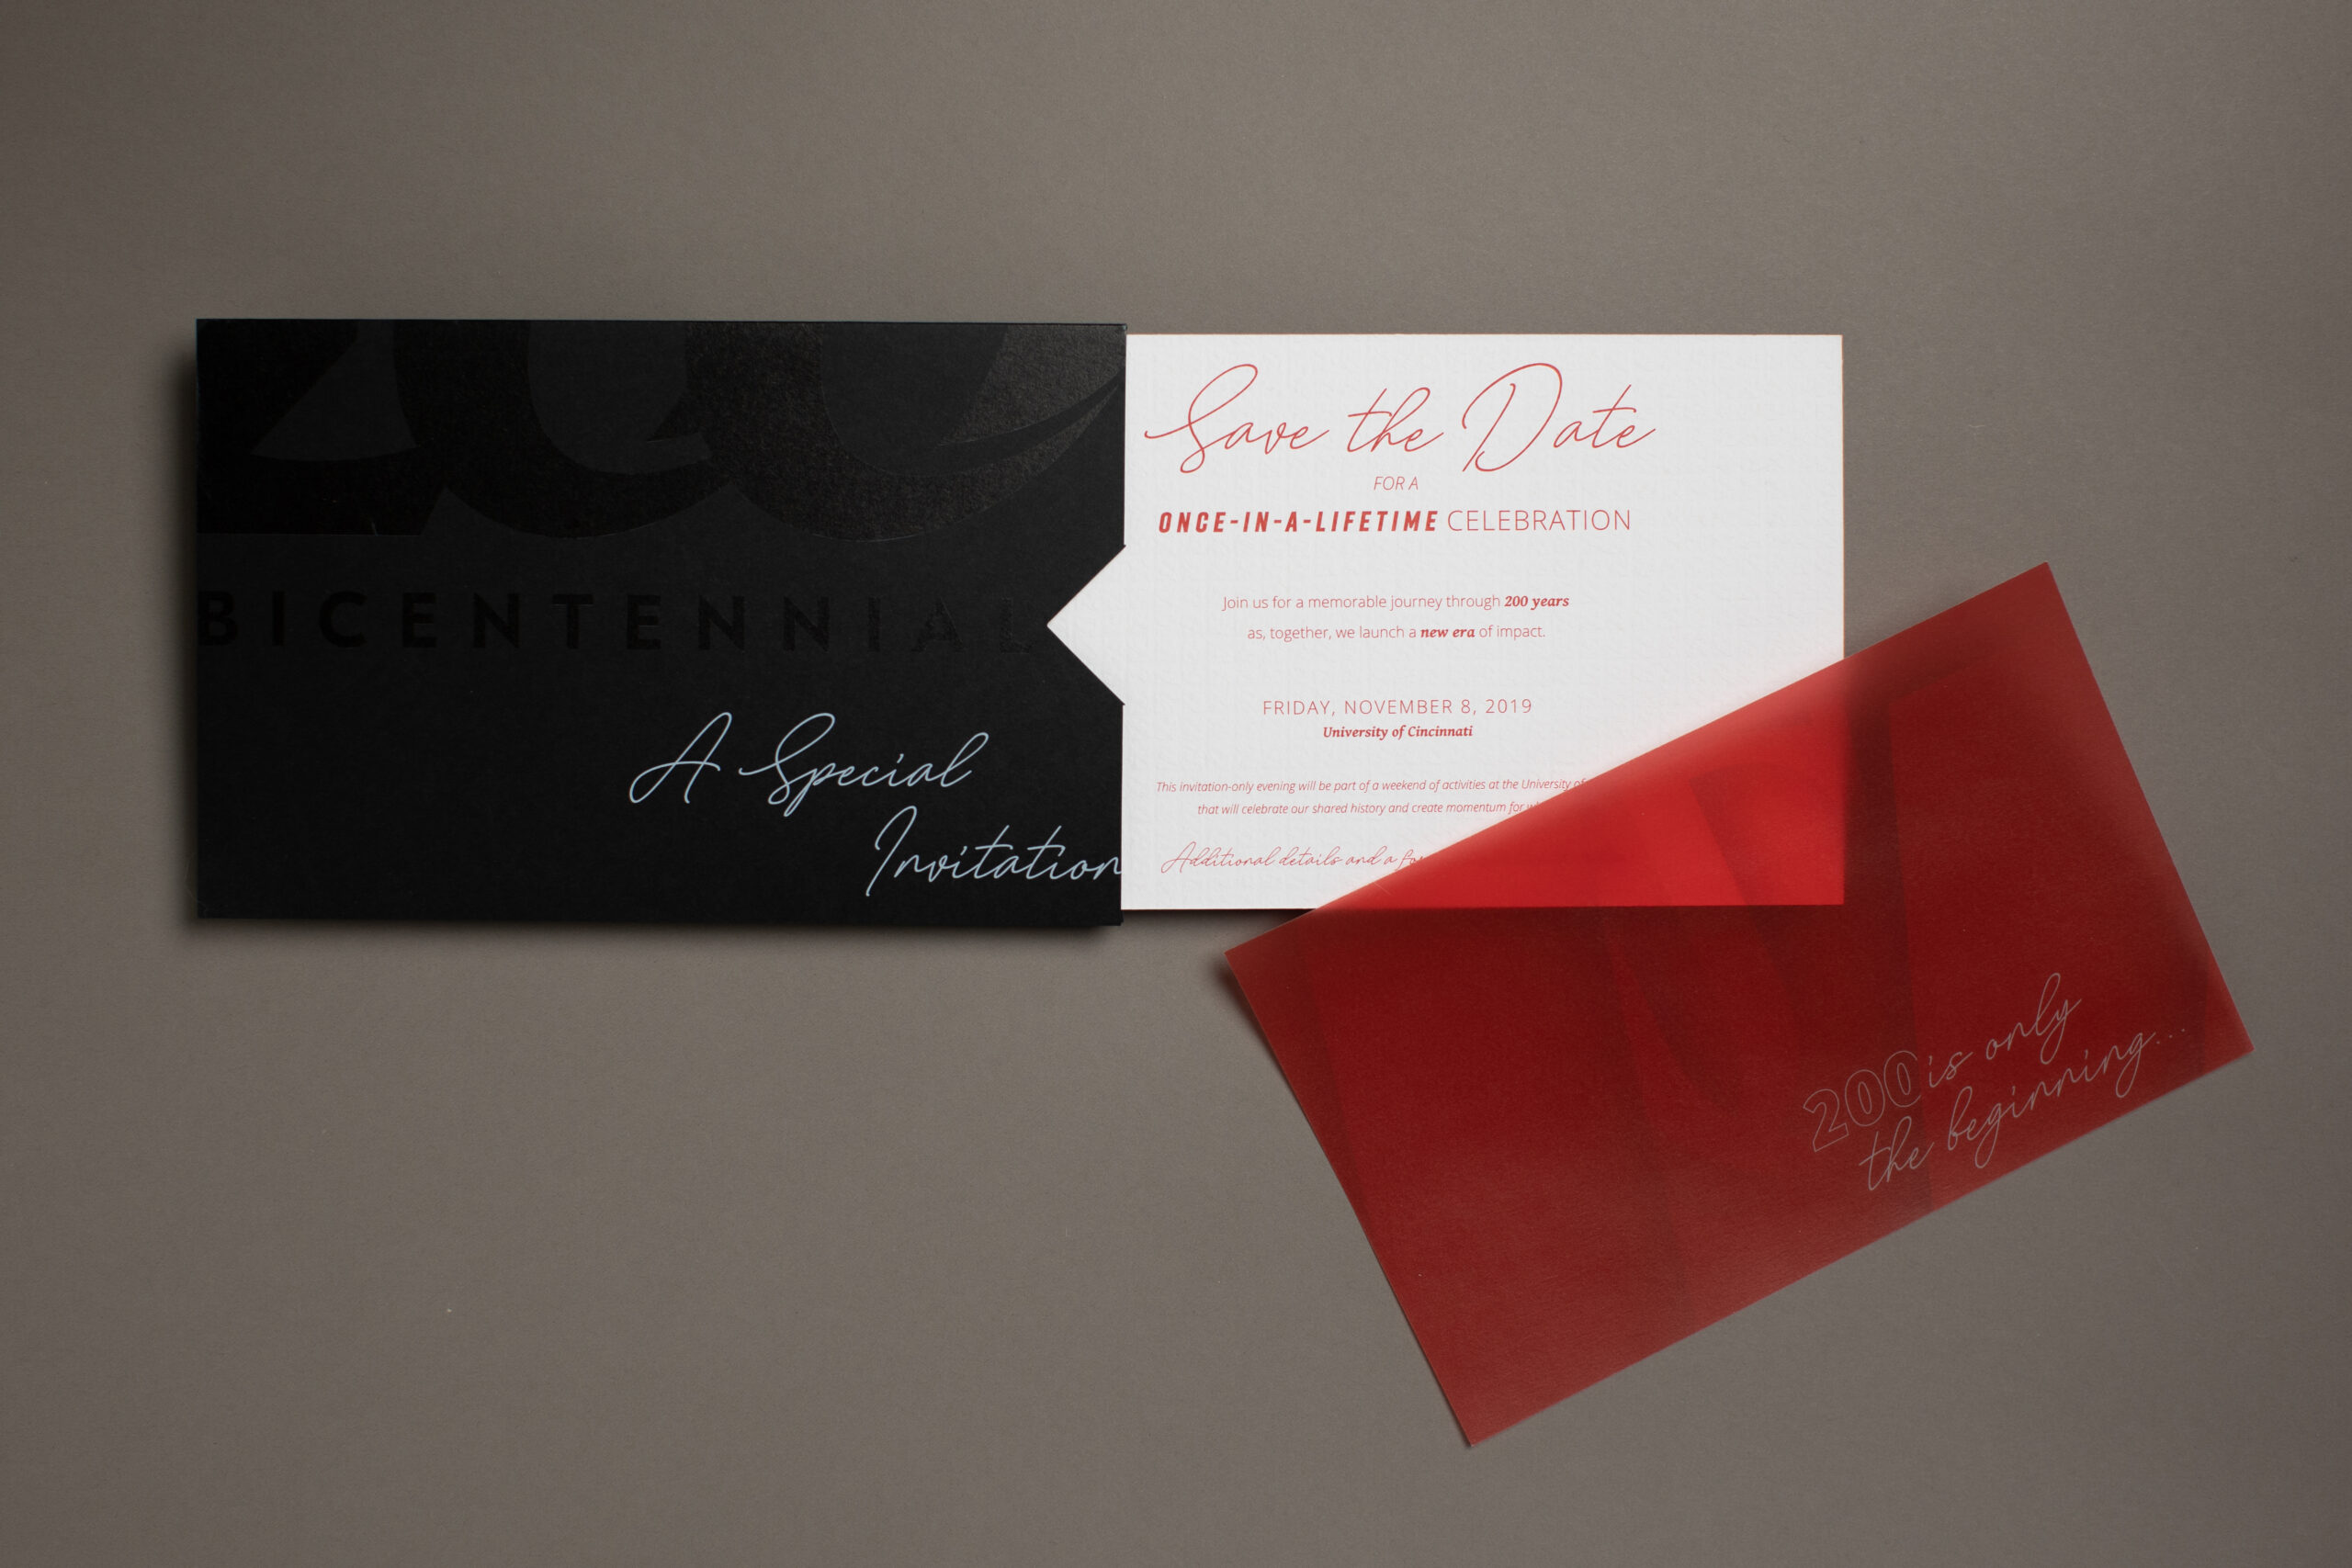 Print Mail Save the Date Event for University by Oregon Printing Dayton Ohio